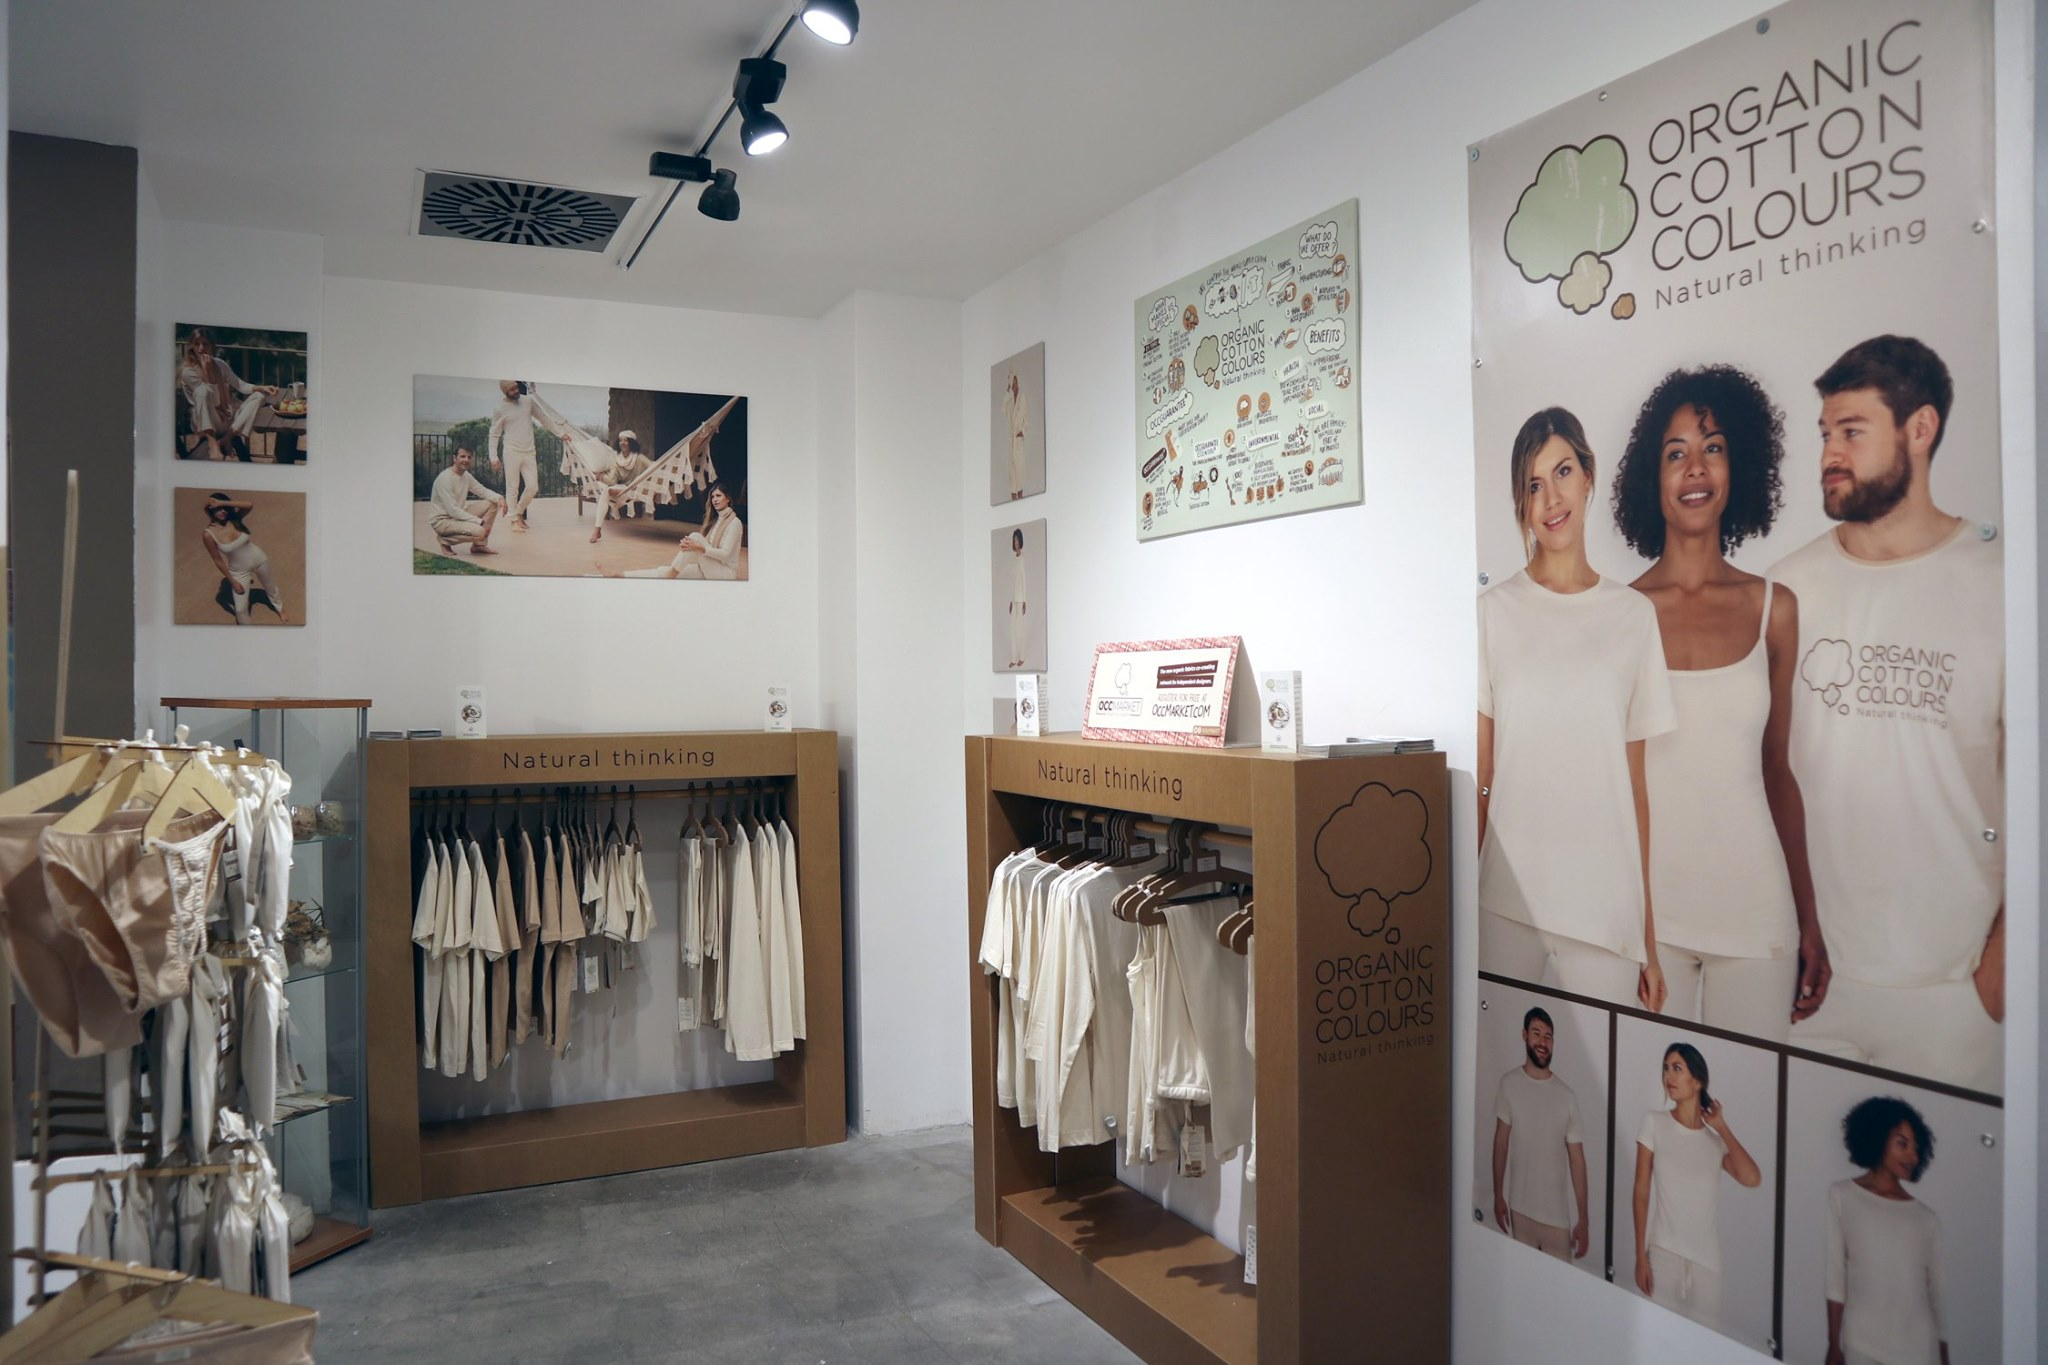 ¡We are waiting for you at the reopening party of the SKUNKFUNK outlet store in Barcelona!